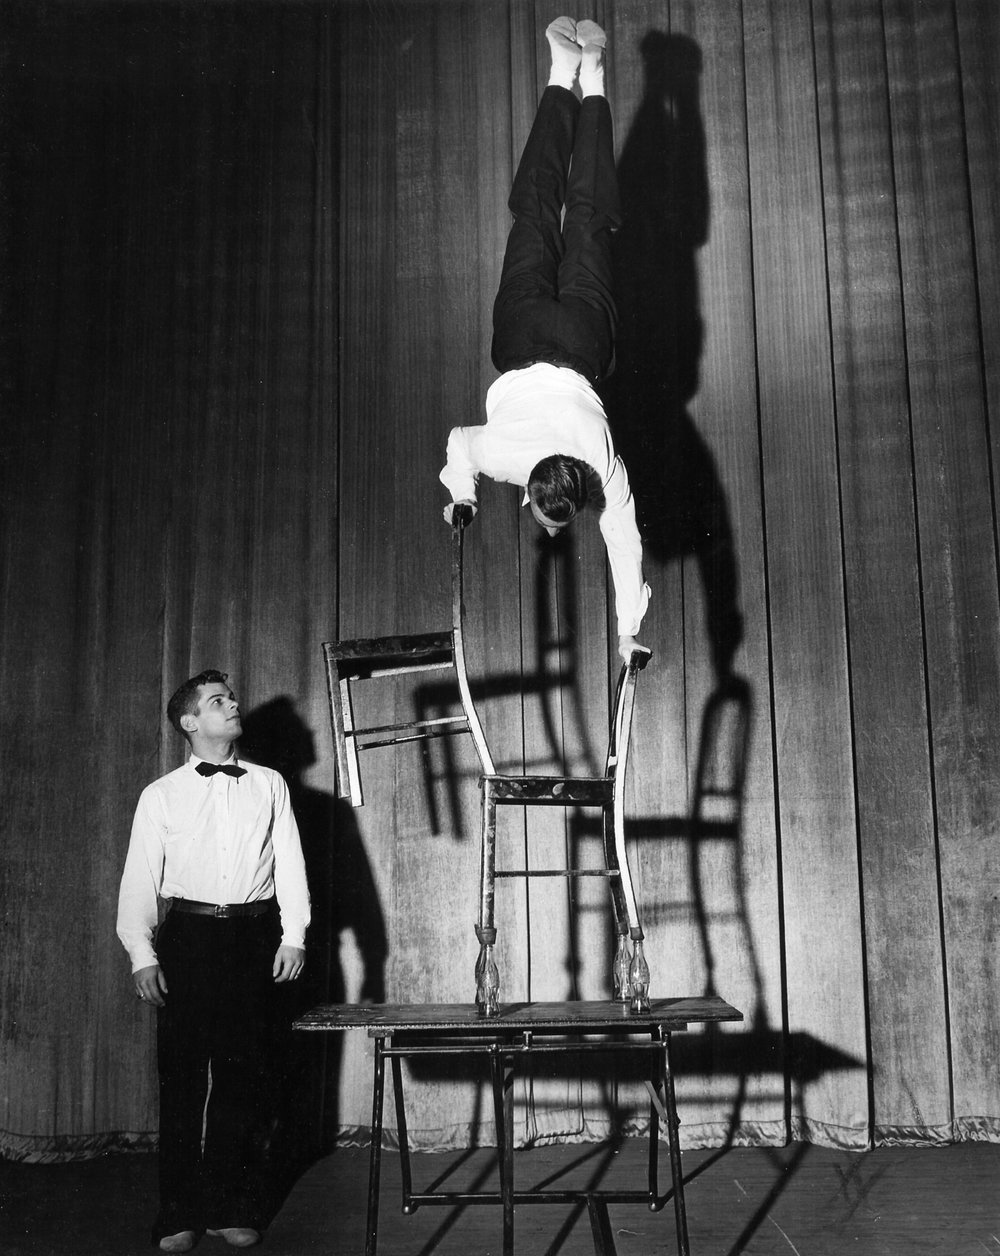 1949 Al Kuckhoff doing a handstand on chairs as Tom Bolgiano watches.jpg